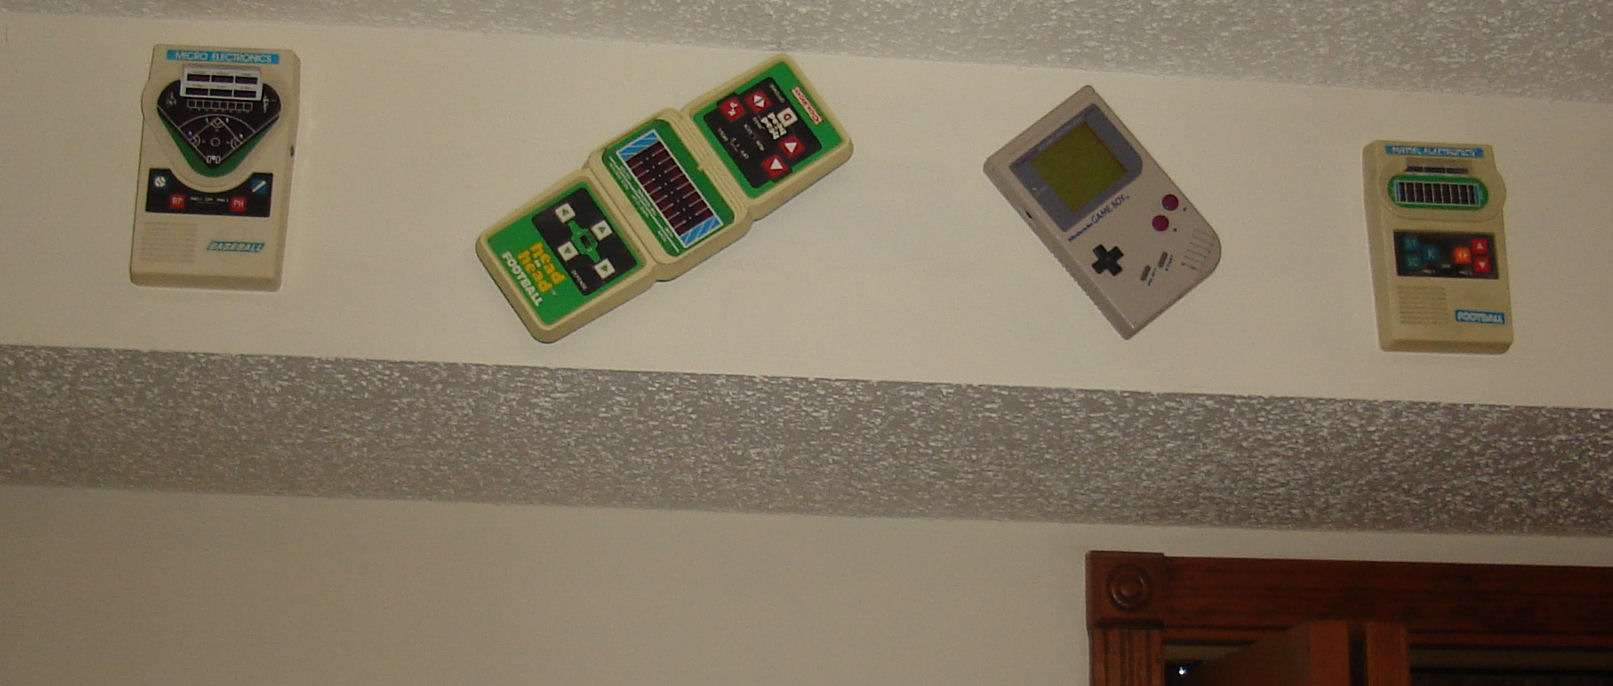 Old handheld games mounted on the wall